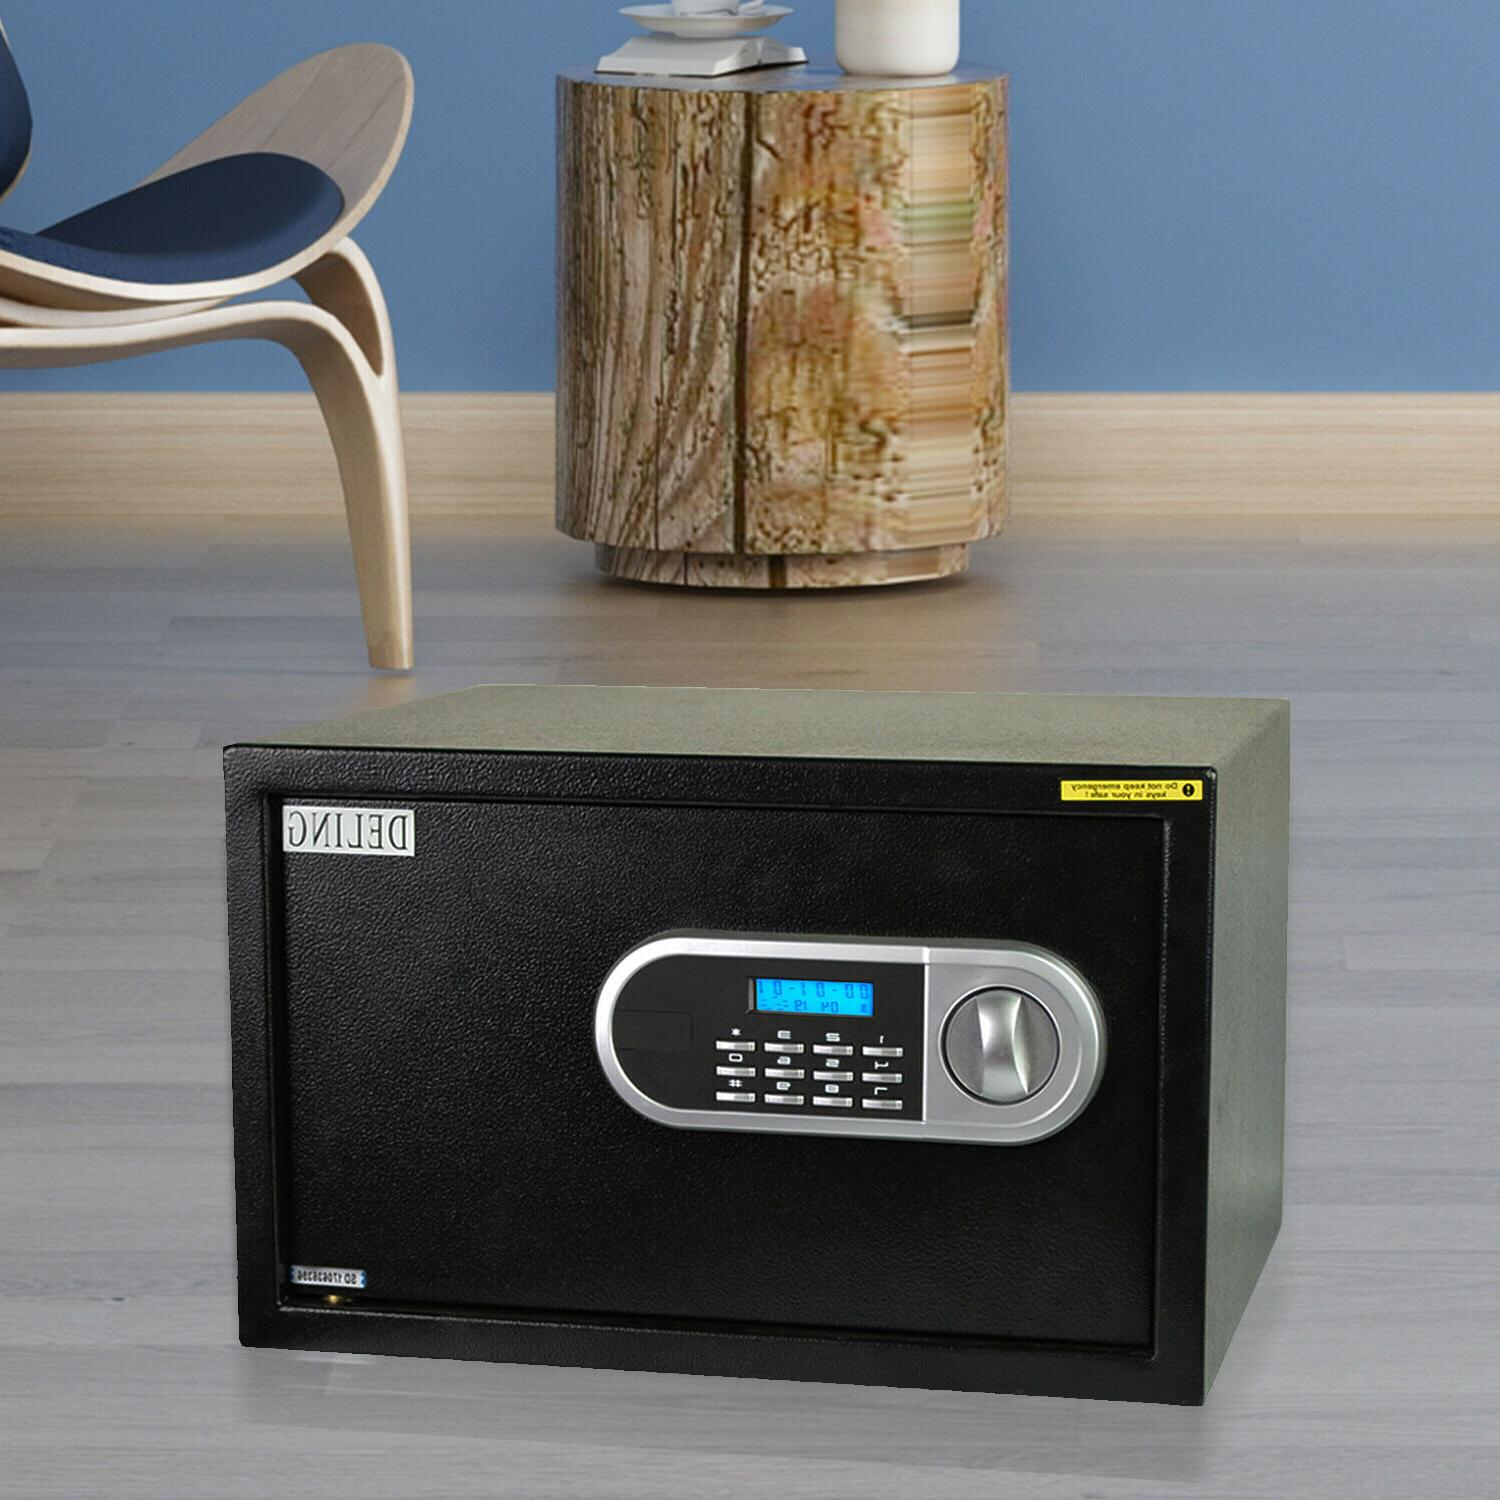 Large Digital Biometric Safe Fingerprint Code Lock Electroni